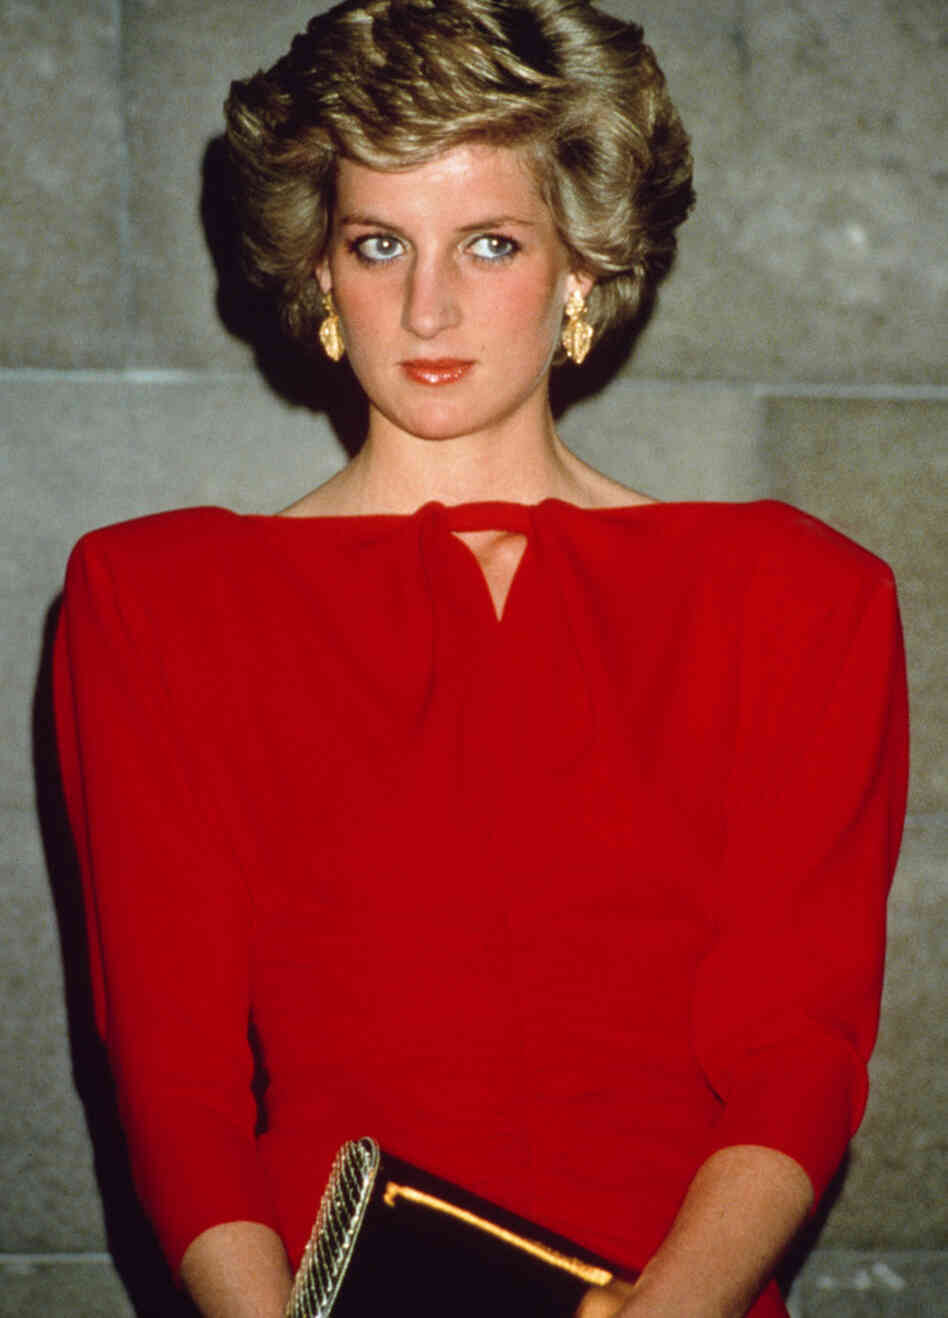 Princess Diana died on Aug. 31, 1997, in a Paris car crash while trying to avoid paparazzi.